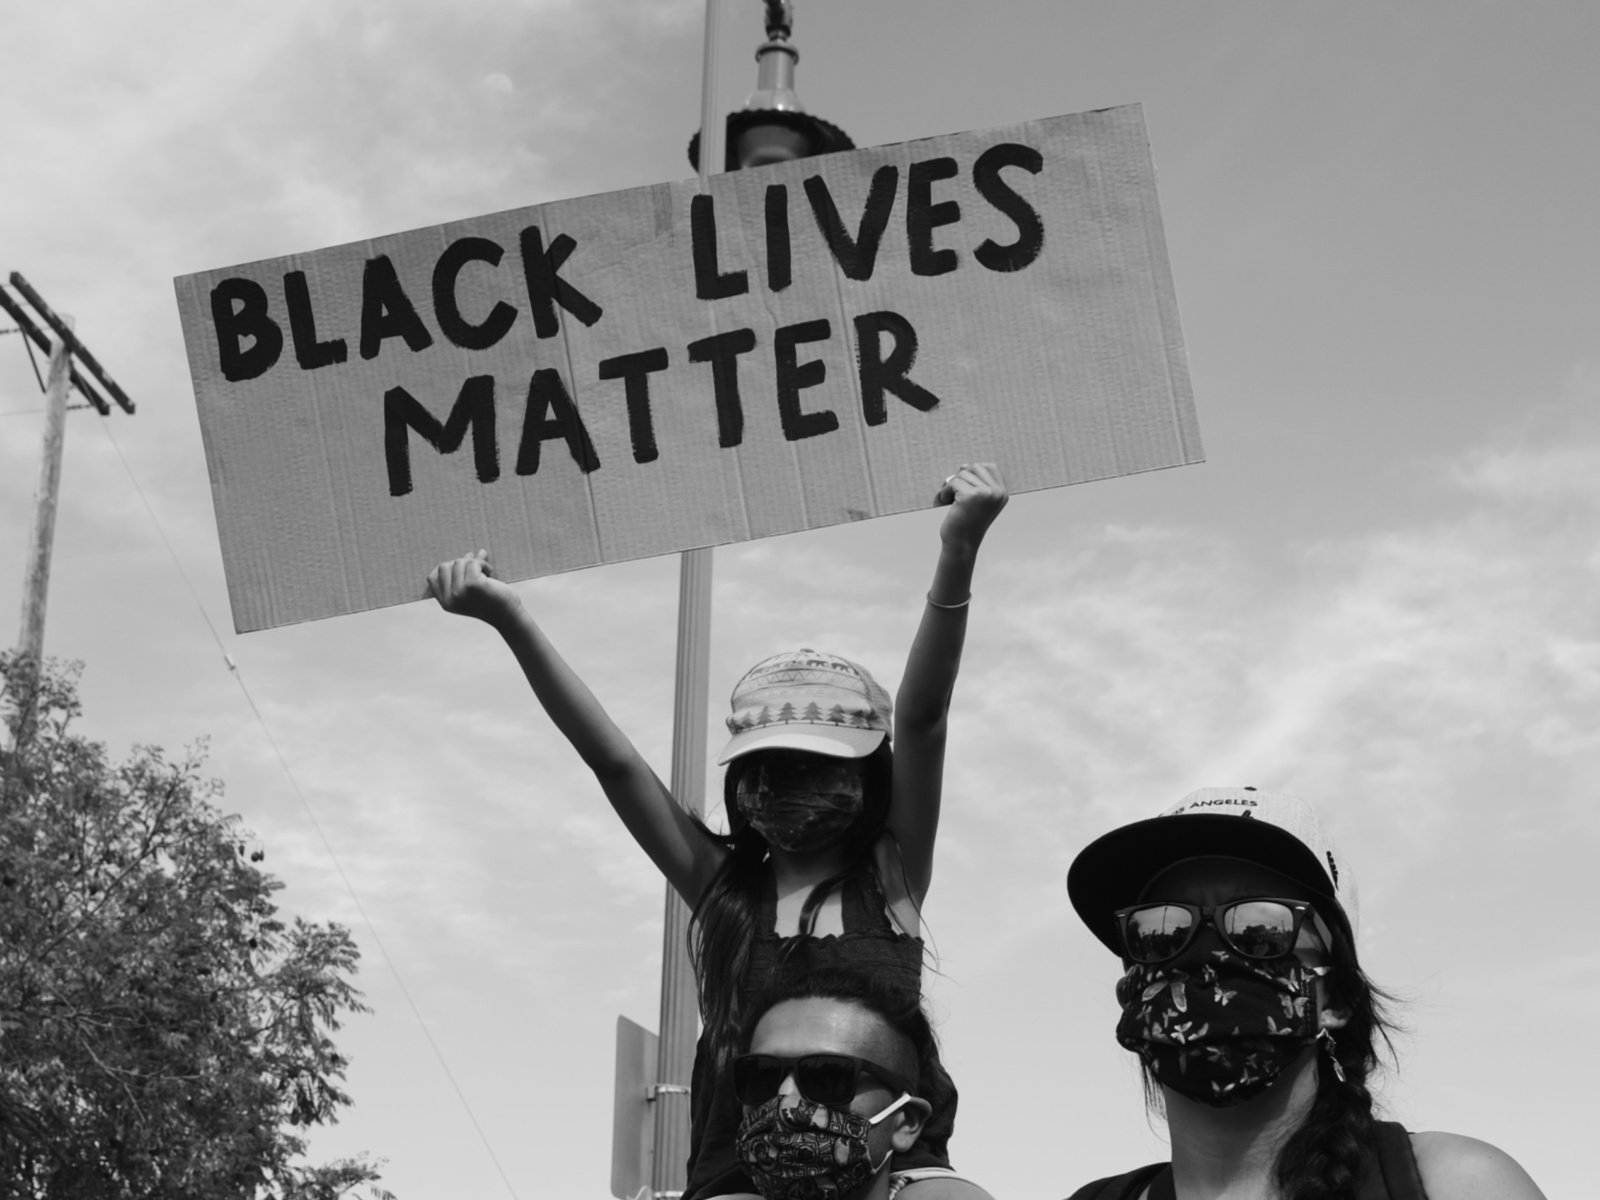 You're non-Black + want to support Black Lives Matter: Start with these ideas